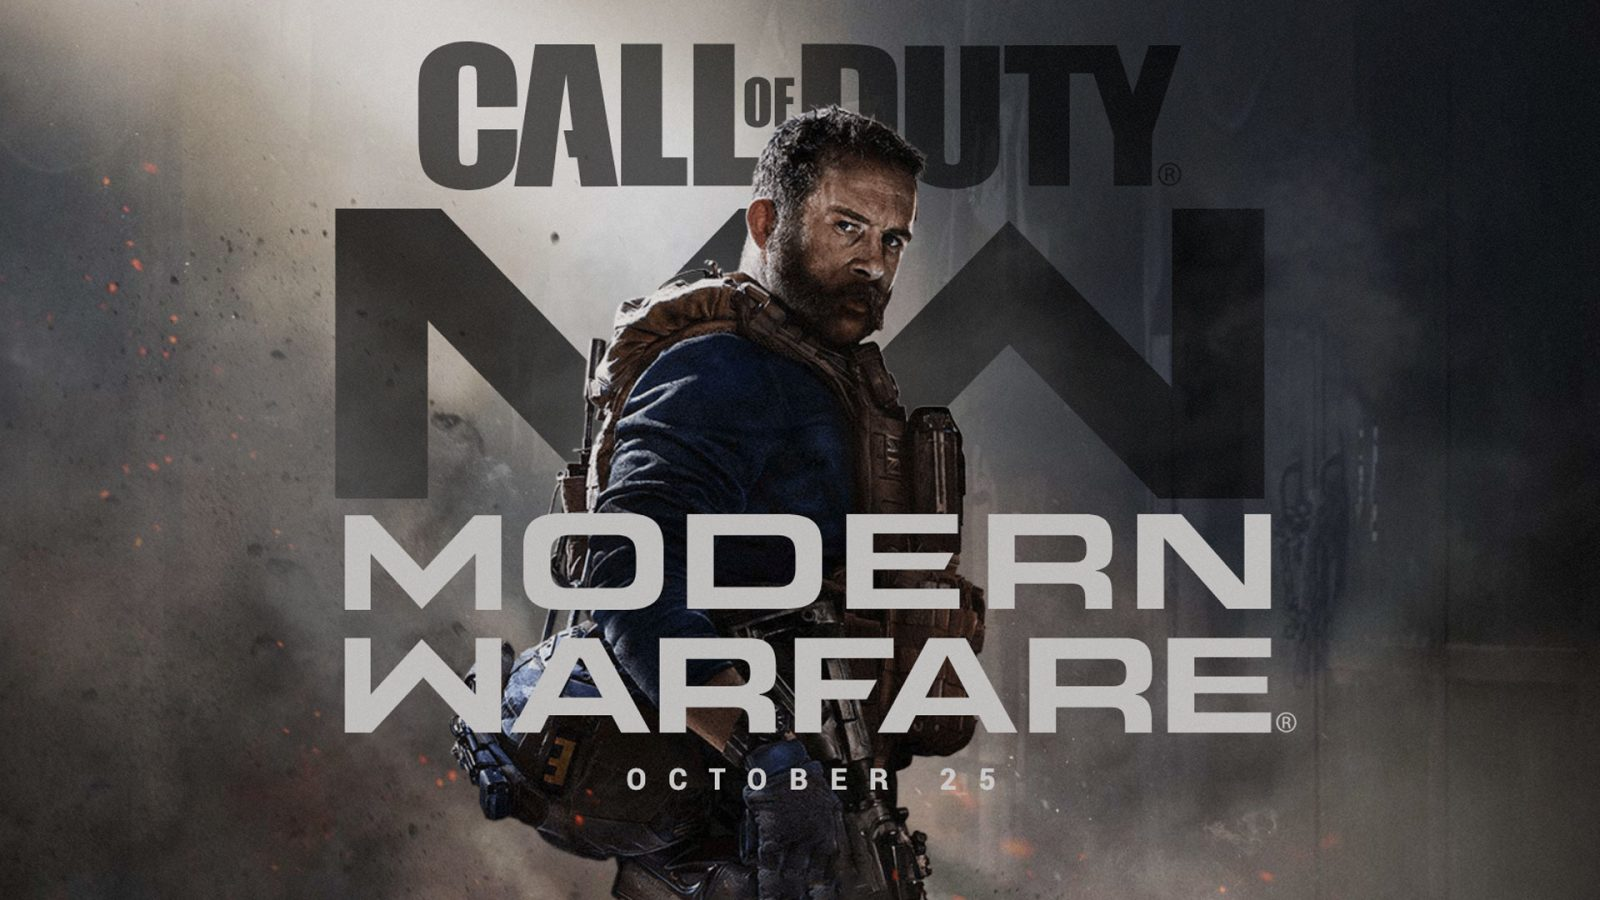 Call of Duty: Modern Warfare multiplayer beta review – the hype intensifies